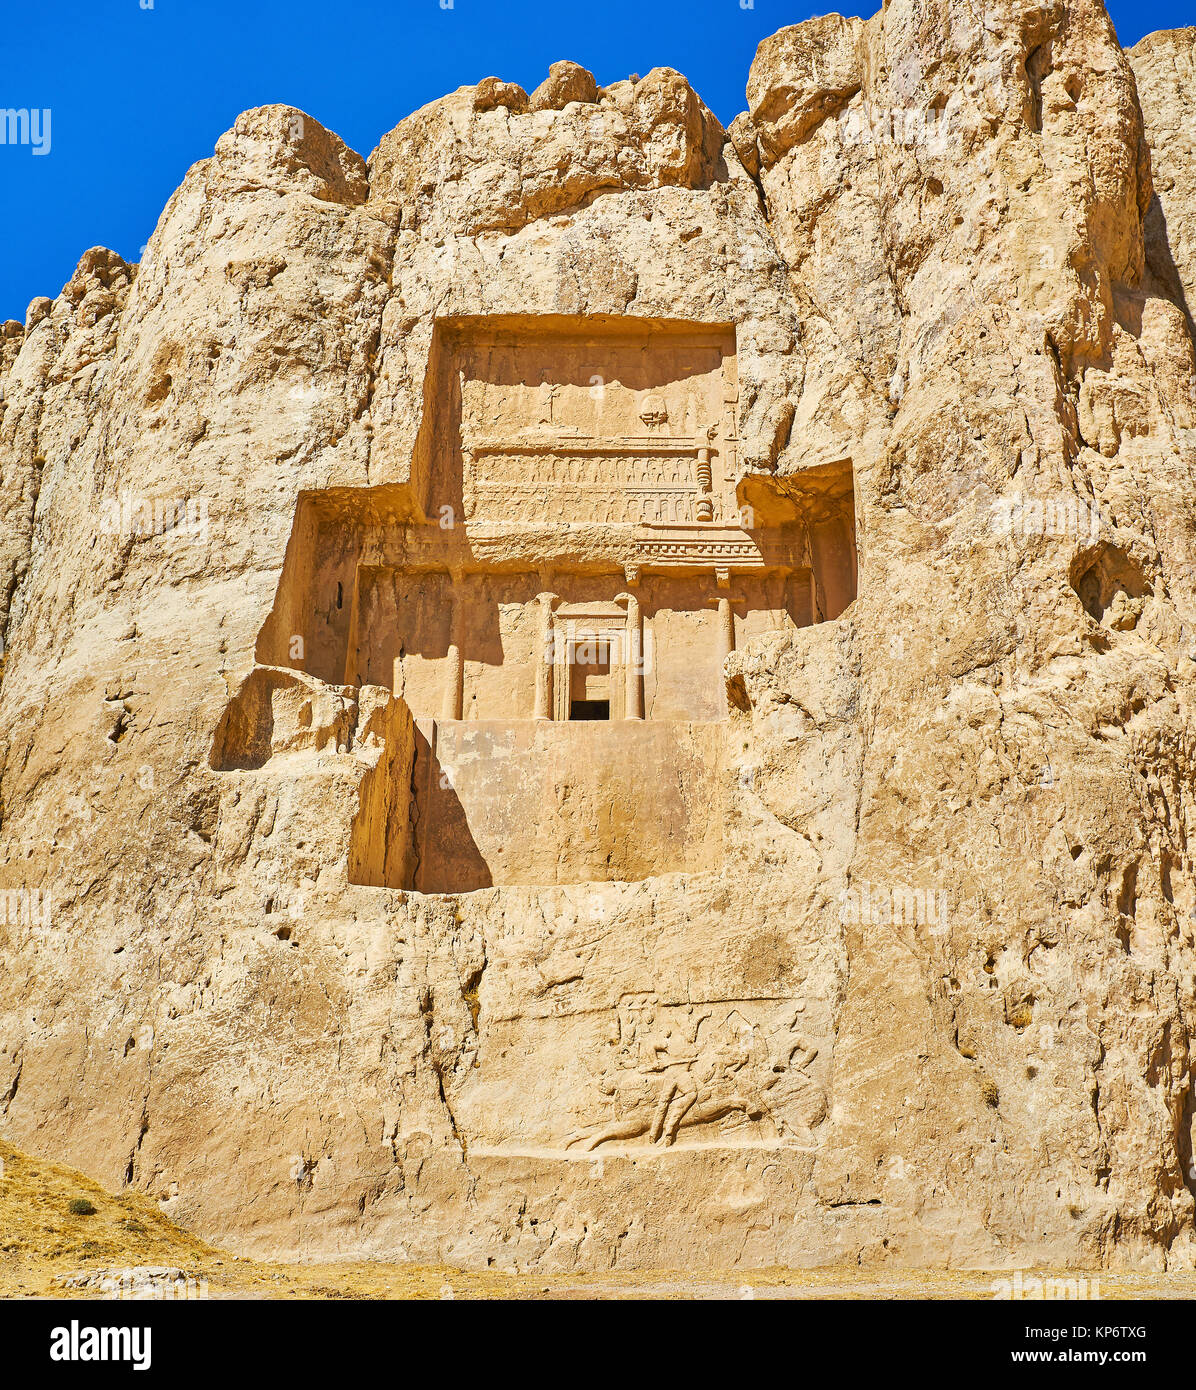 The carved in rock Mausoleum of Darius II in Naqsh-e Rustam Necropolis, from below can be seen preserved equestrian - Stock Image